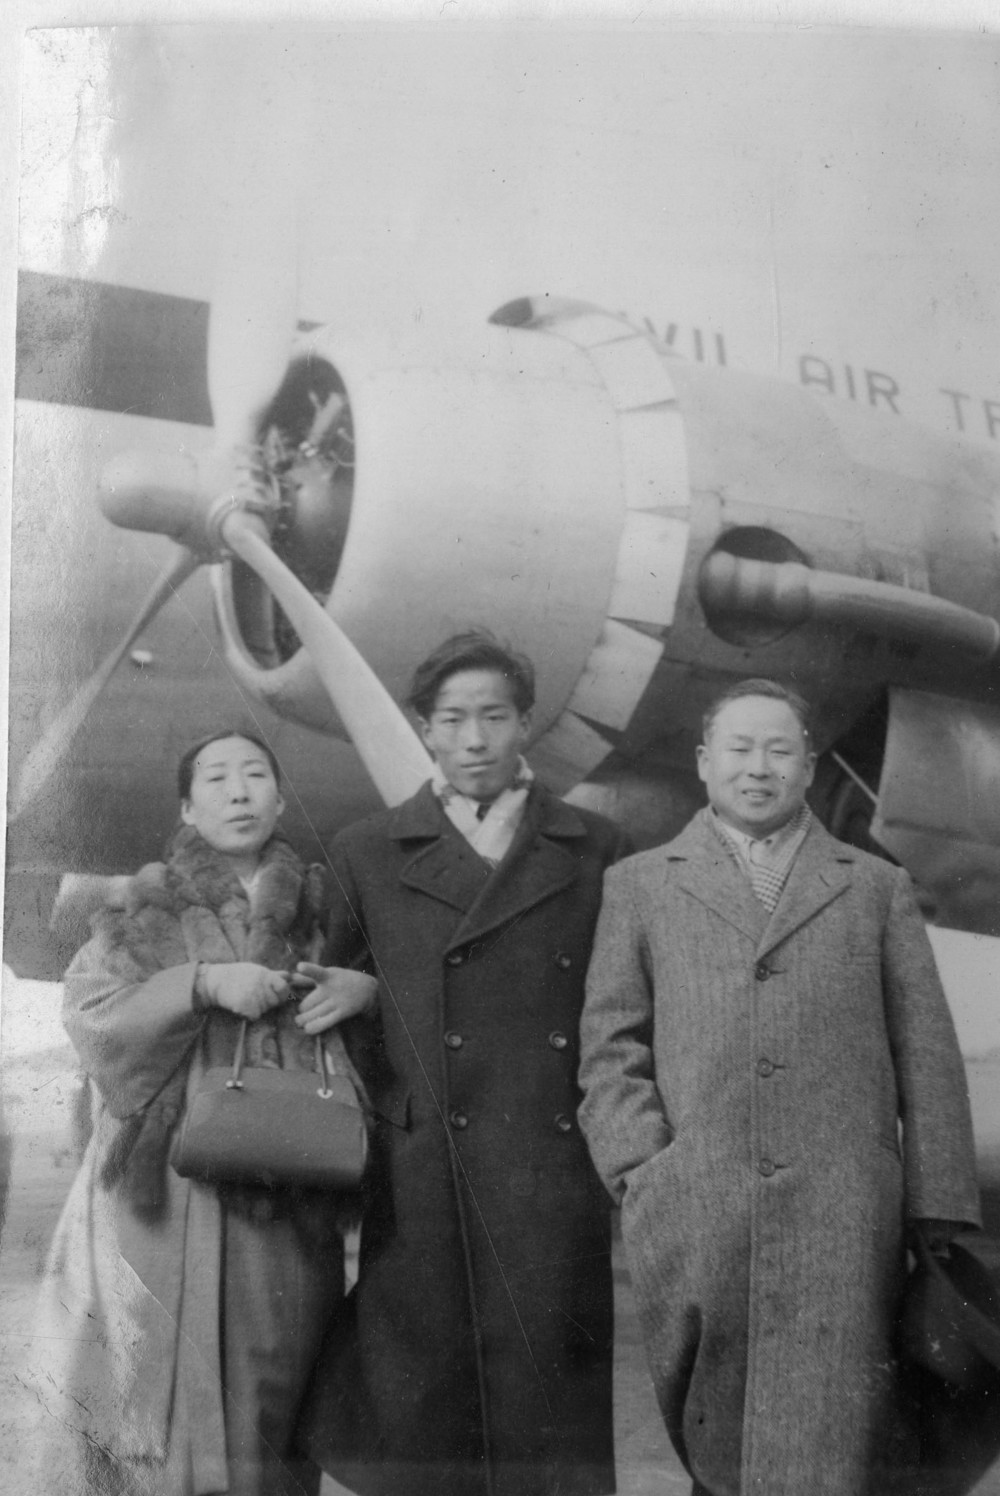 With his parents, on his departure date from Seoul, 1955